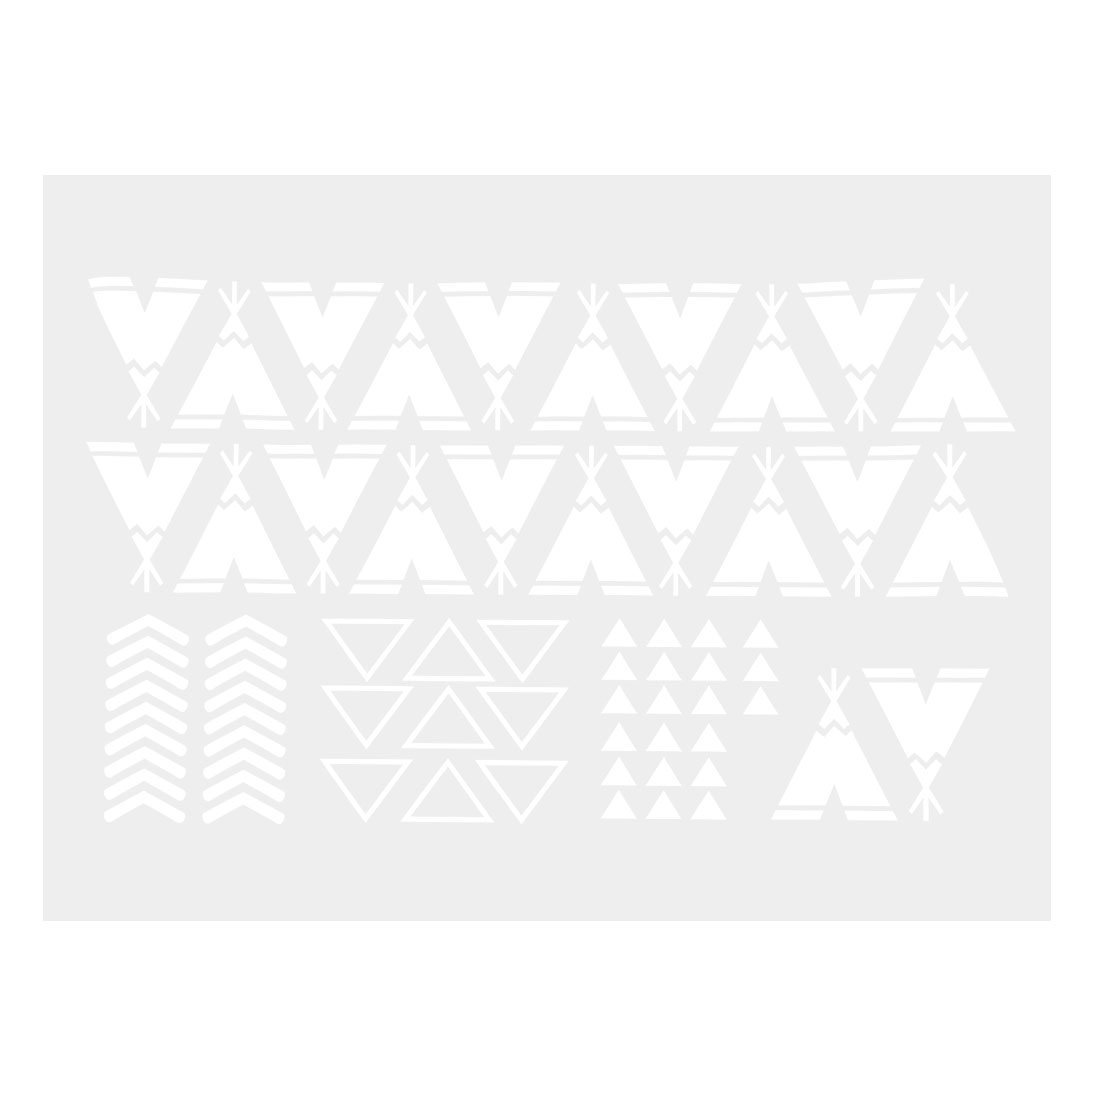 White Teepee Pattern Wall Stickers Removable Decals for Living Room Bedroom